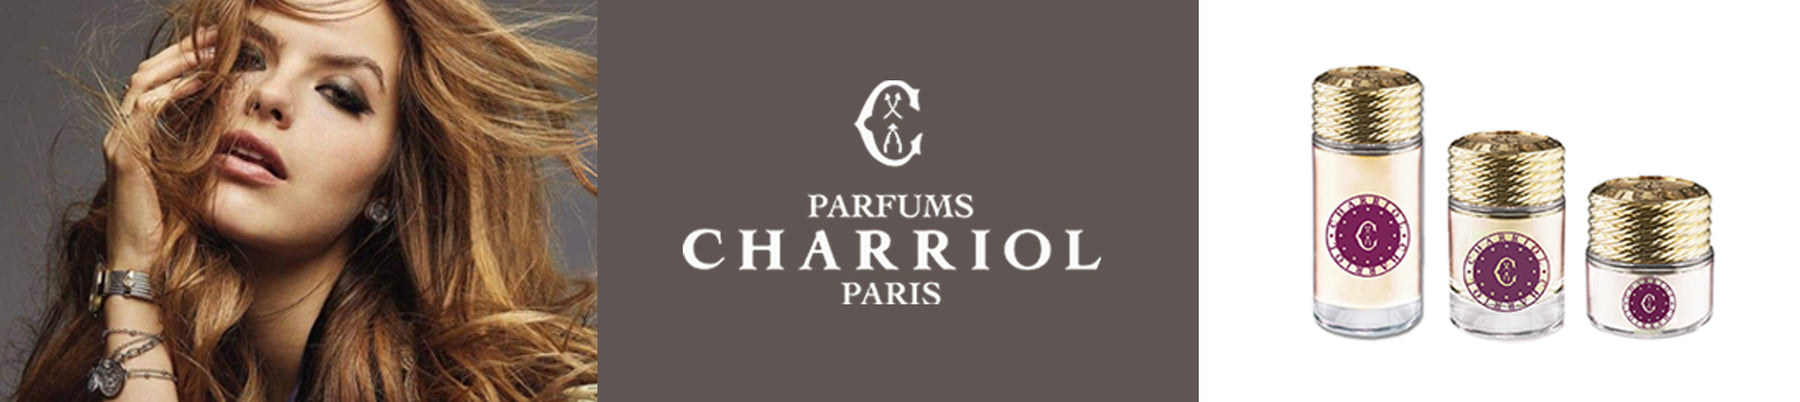 Parfums Charriol